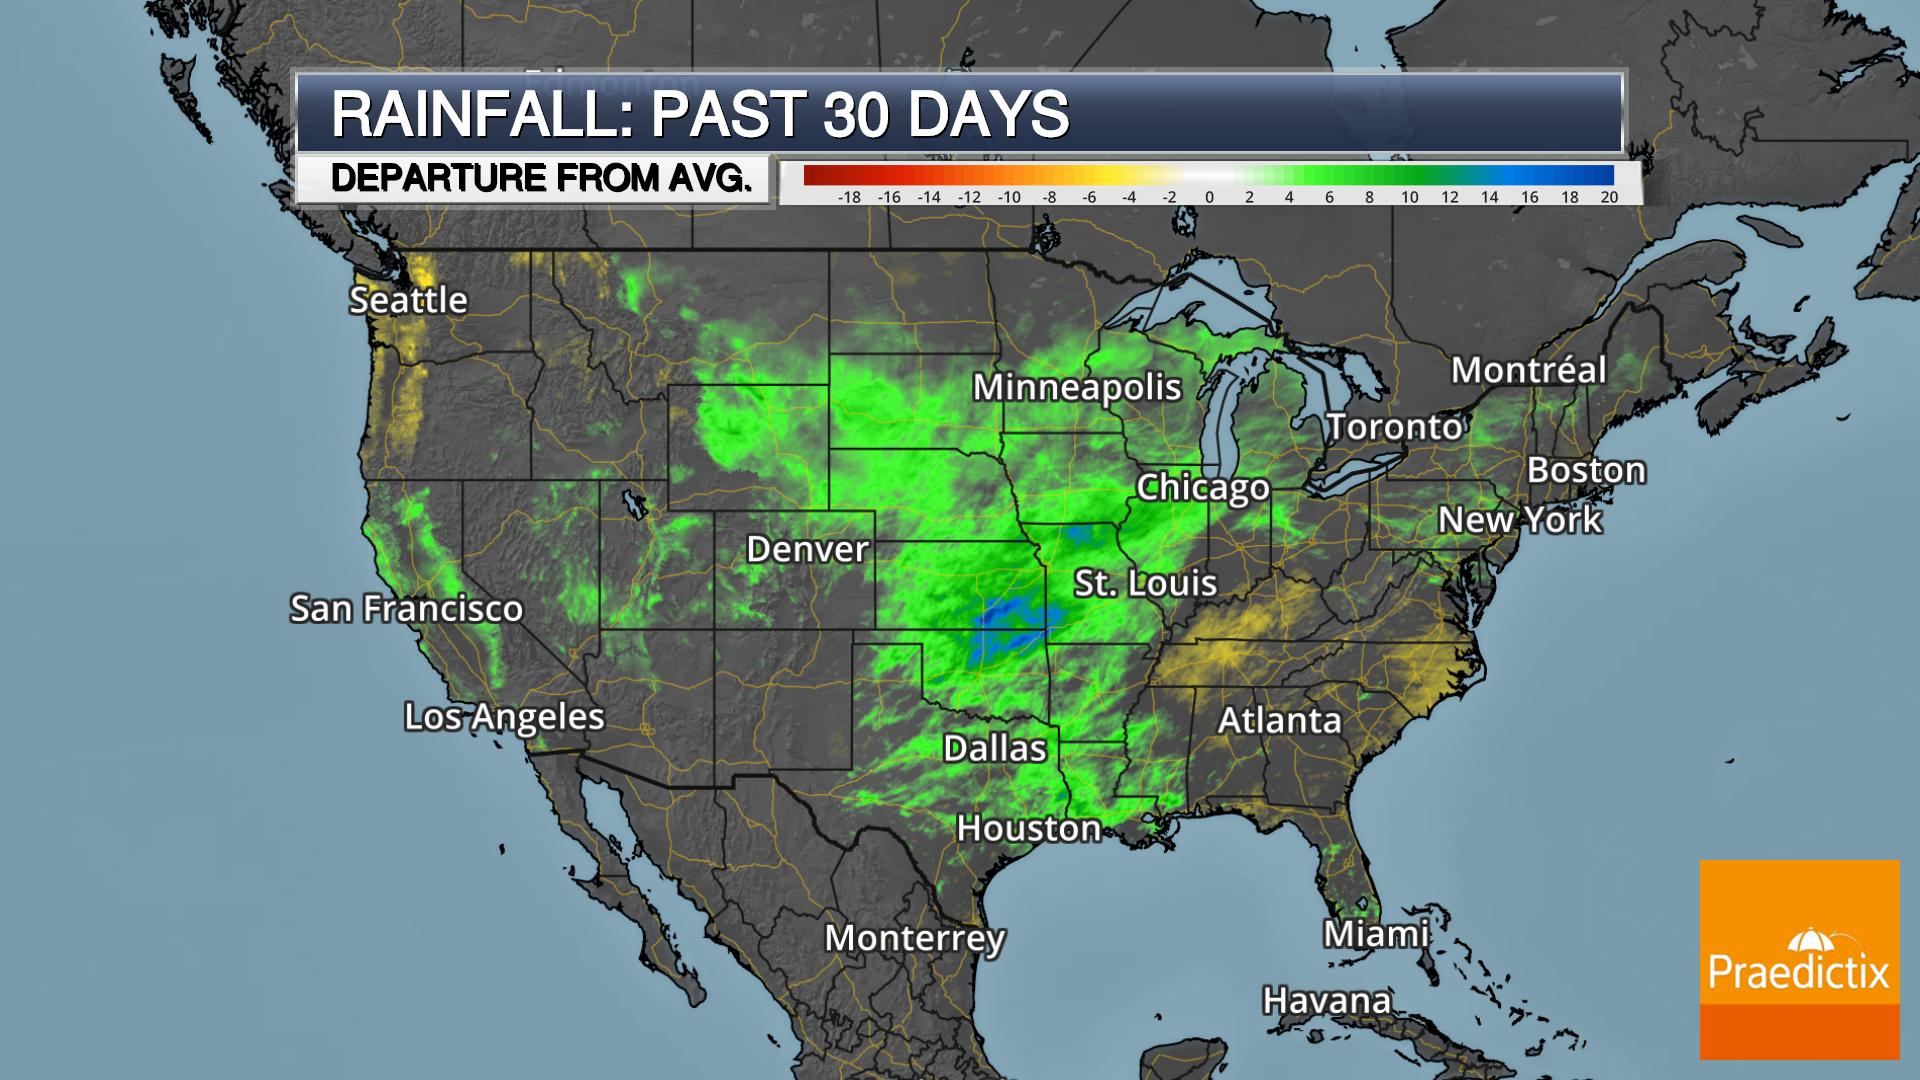 Weather map of departure from average 30 day rain in United States with legend.